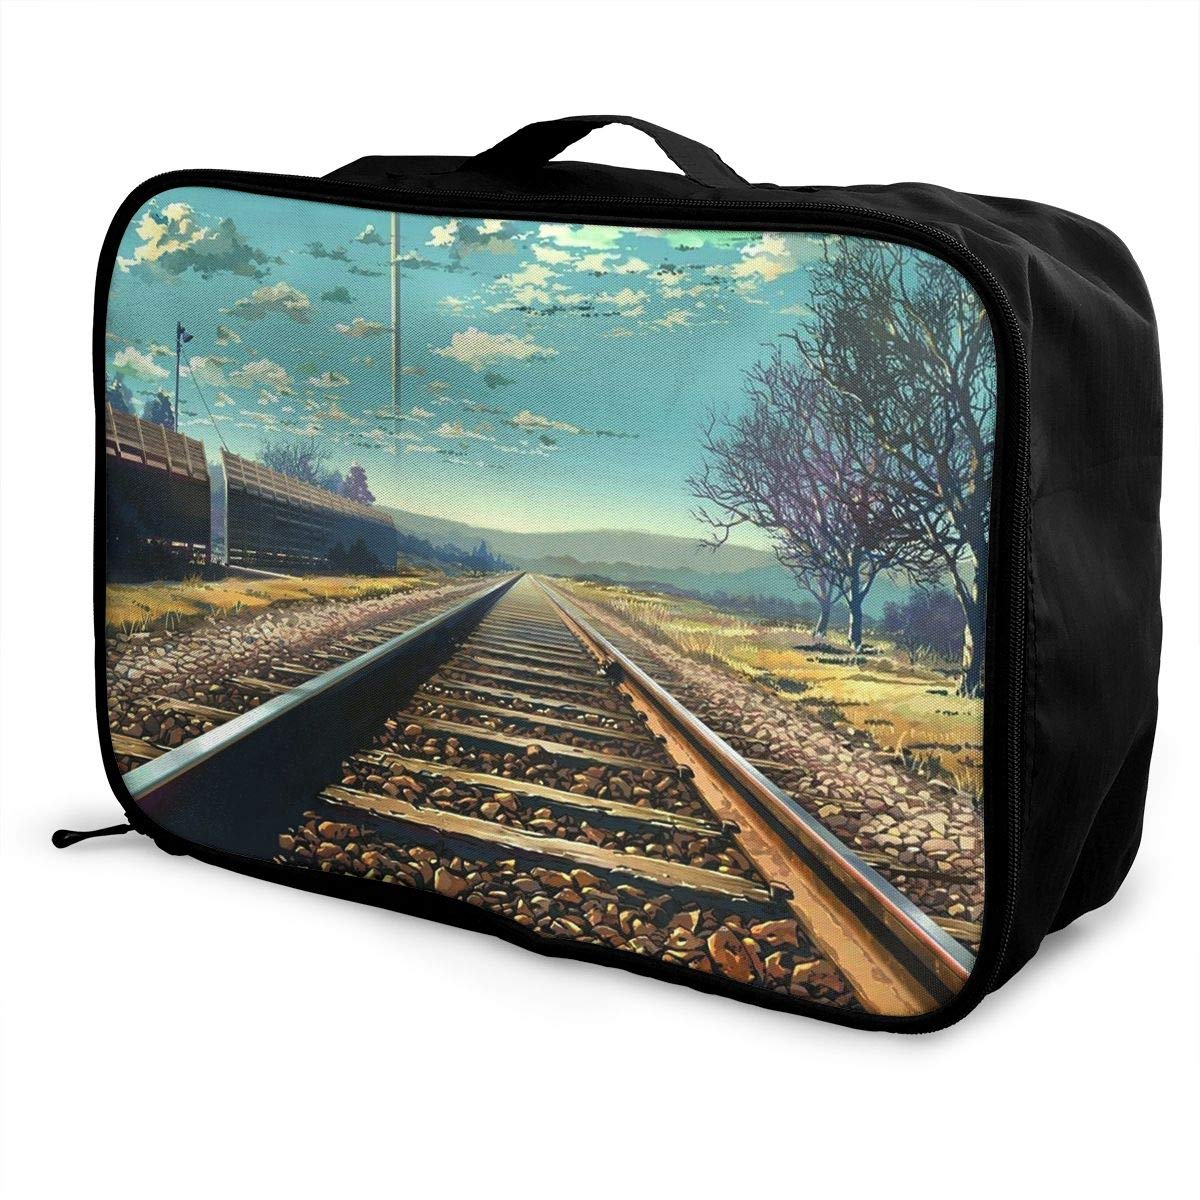 Travel Luggage Duffle Bag Lightweight Portable Handbag Train Track Pattern Large Capacity Waterproof Foldable Storage Tote